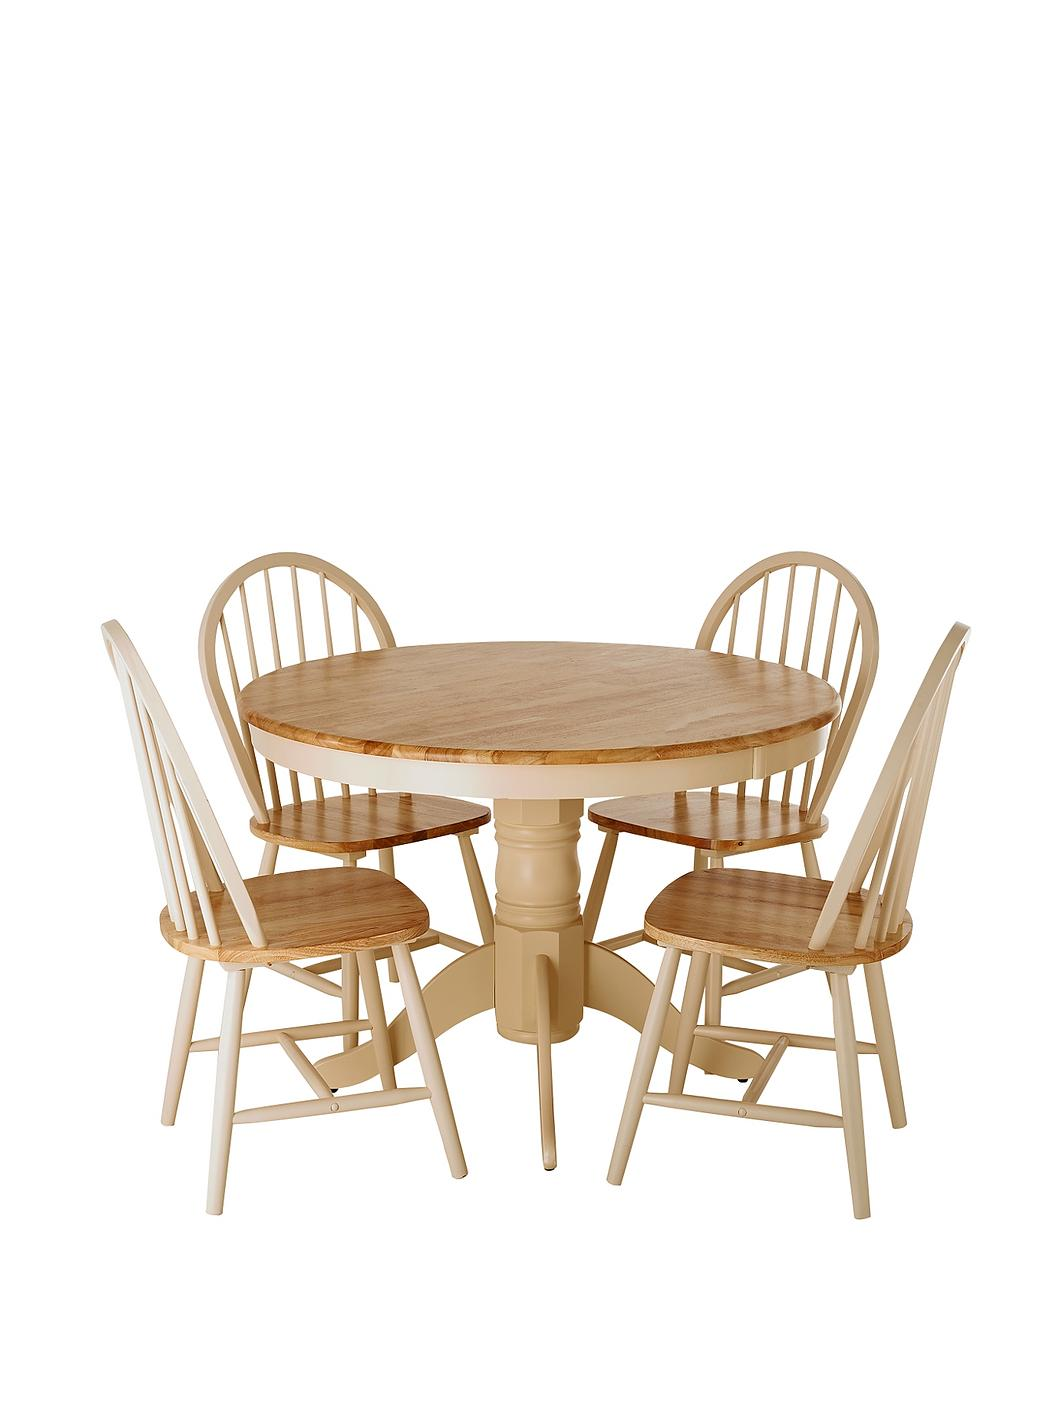 Kildare round dining table and 4 chairs set for Round dining table set for 4